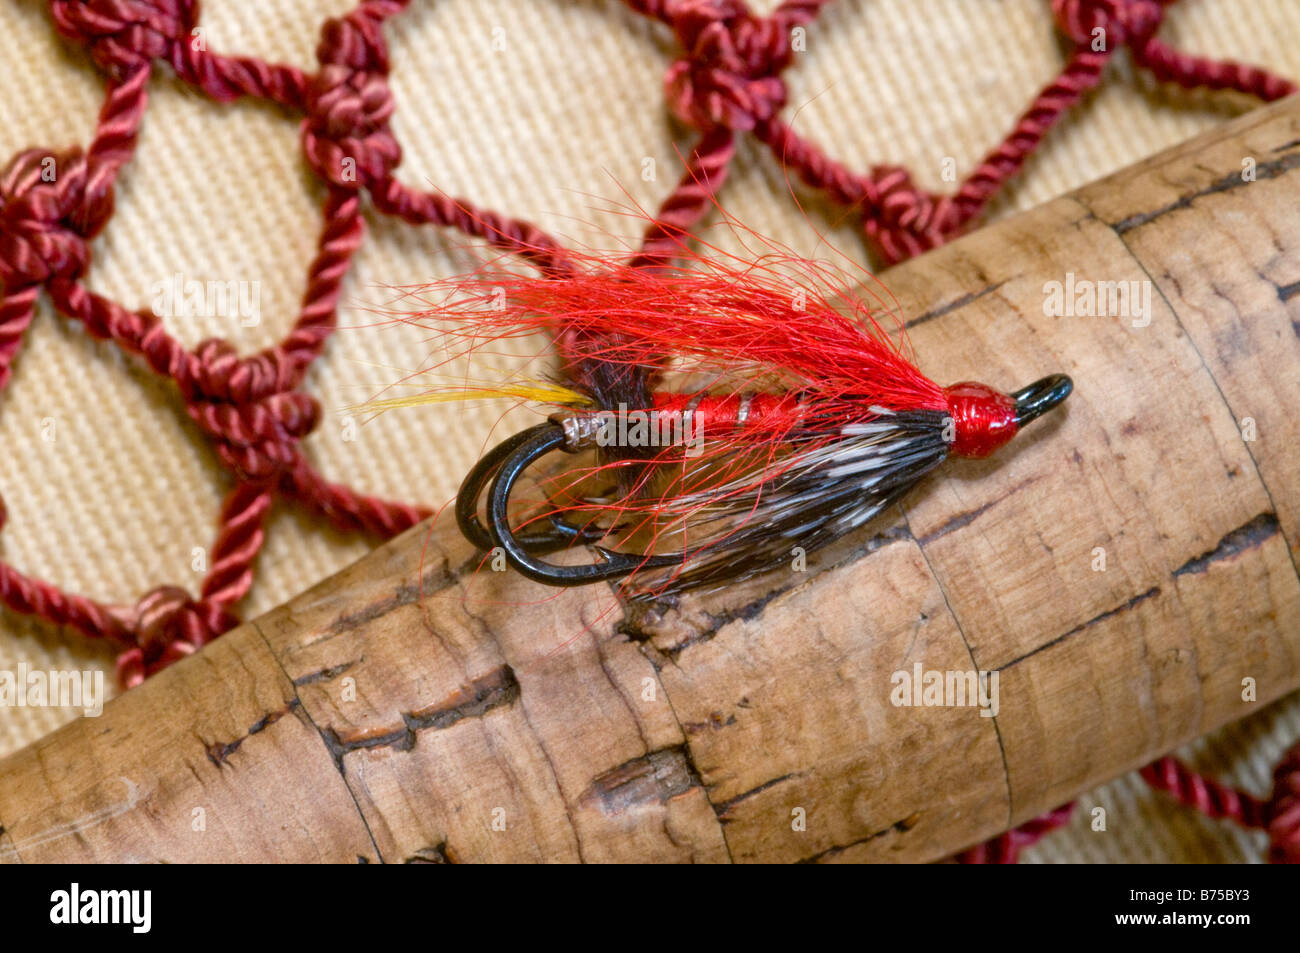 fishing fly  for trout and salmon U.K. England - Stock Image